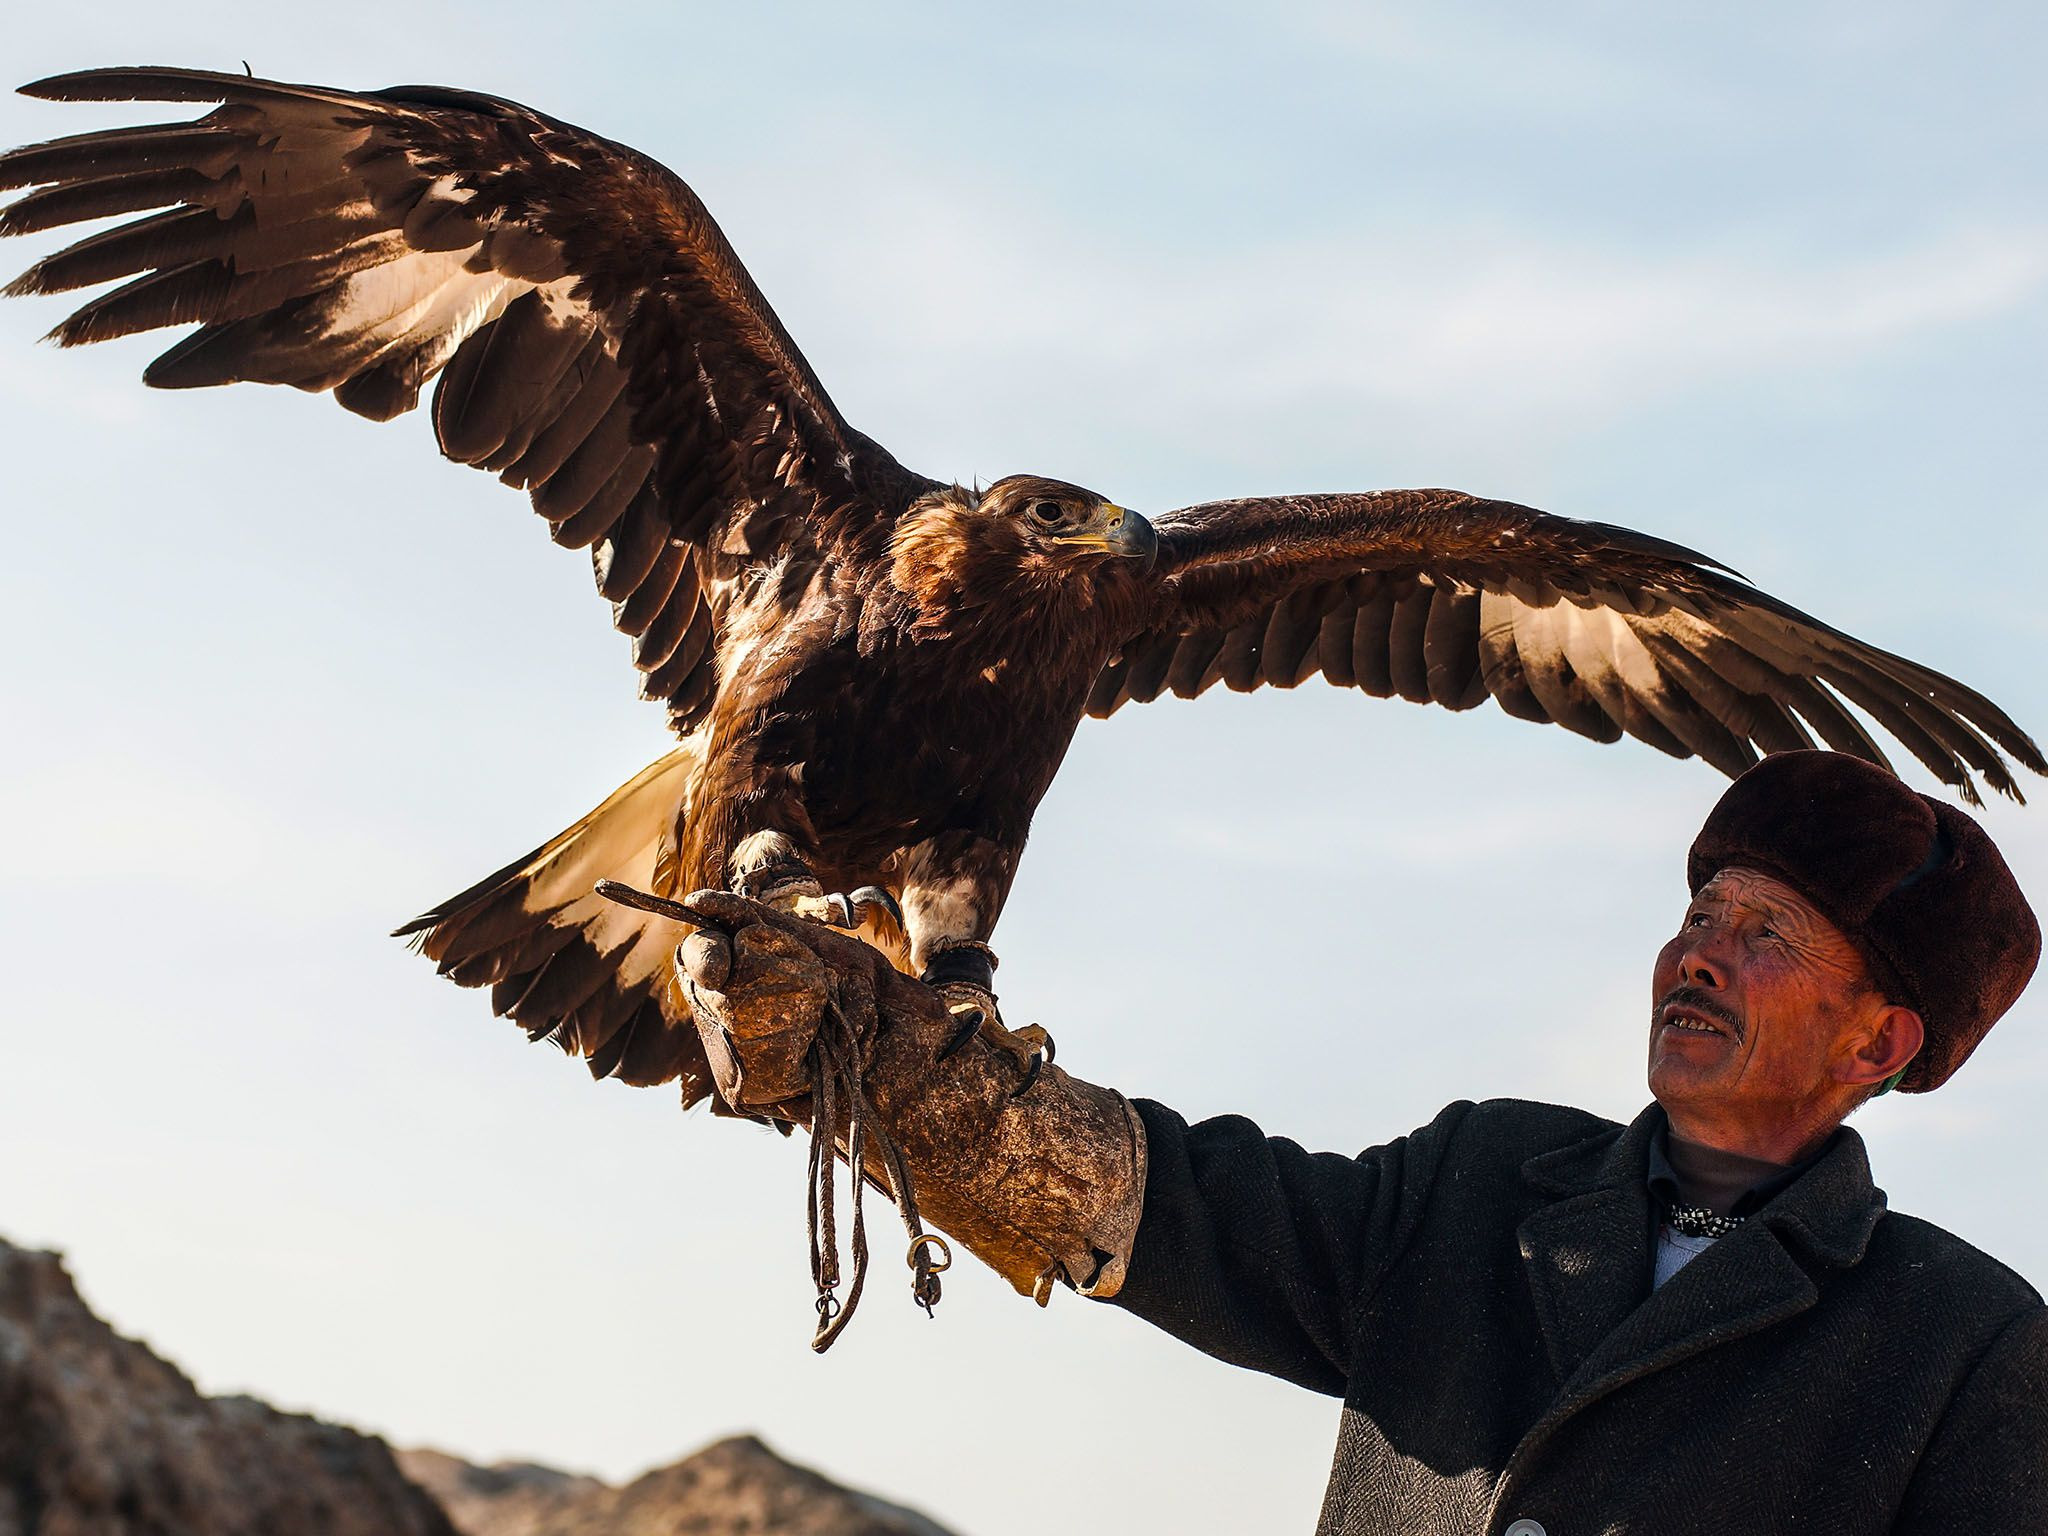 Macan and his eagle. Macan, a master falconer, teaches his son how to hunt with eagles amidst a... [Photo of the day - August 2015]